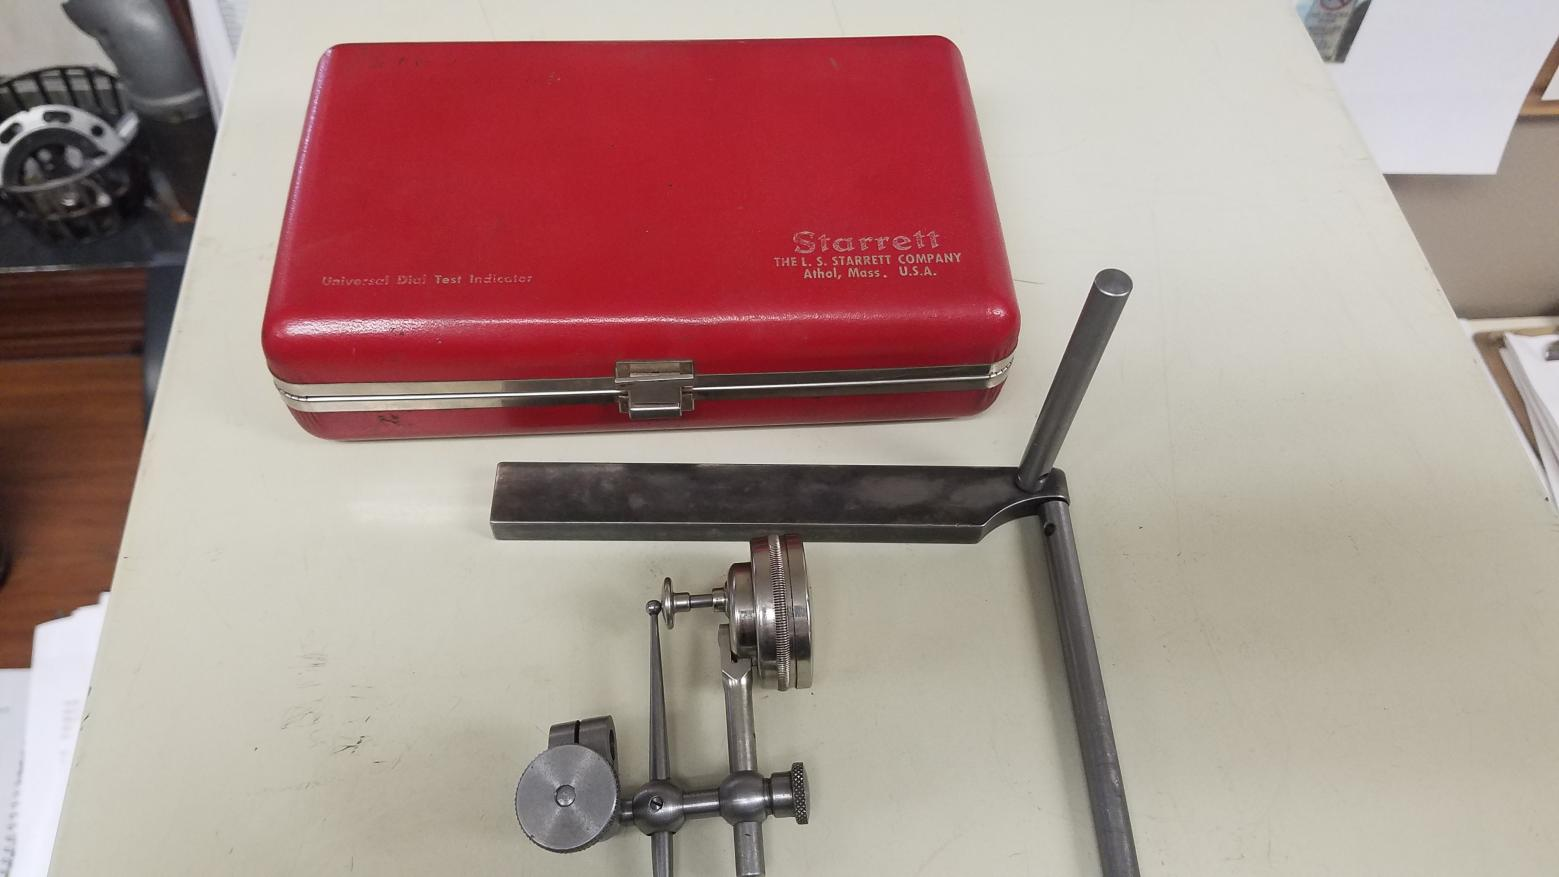 starrett 196 dial indicator parts diagram practical machinist largest manufacturing technology forum on  practical machinist largest